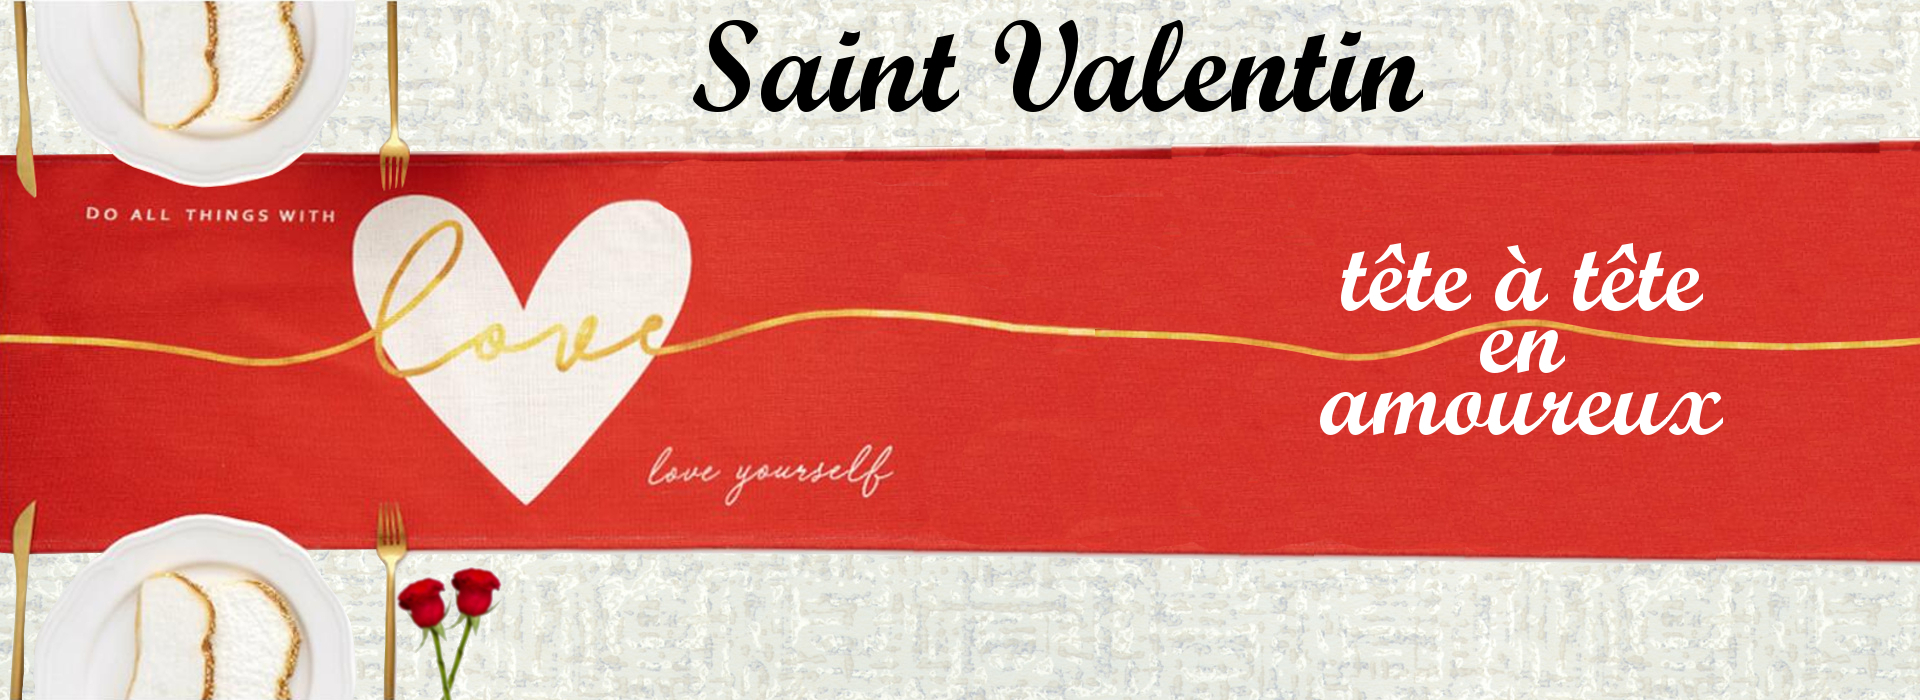 chemin-de-table-saint-valentin